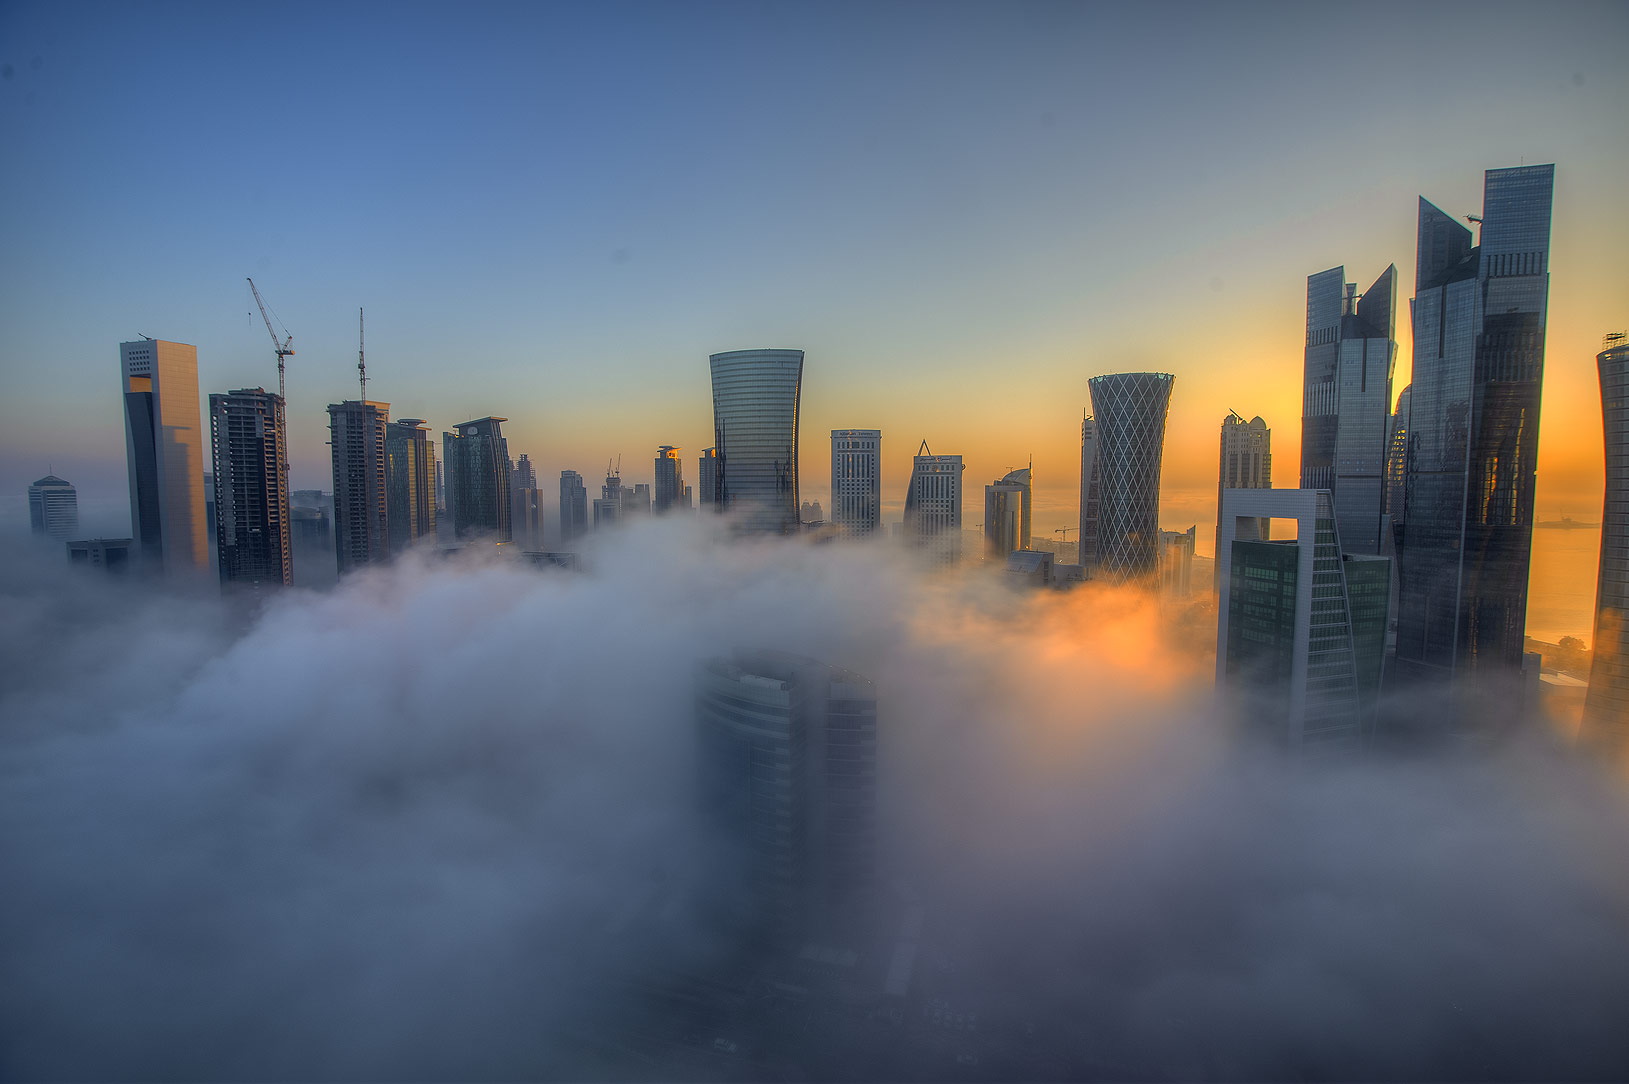 Sunrise through towers in dense fog to the east...Dareen Tower in West Bay. Doha, Qatar